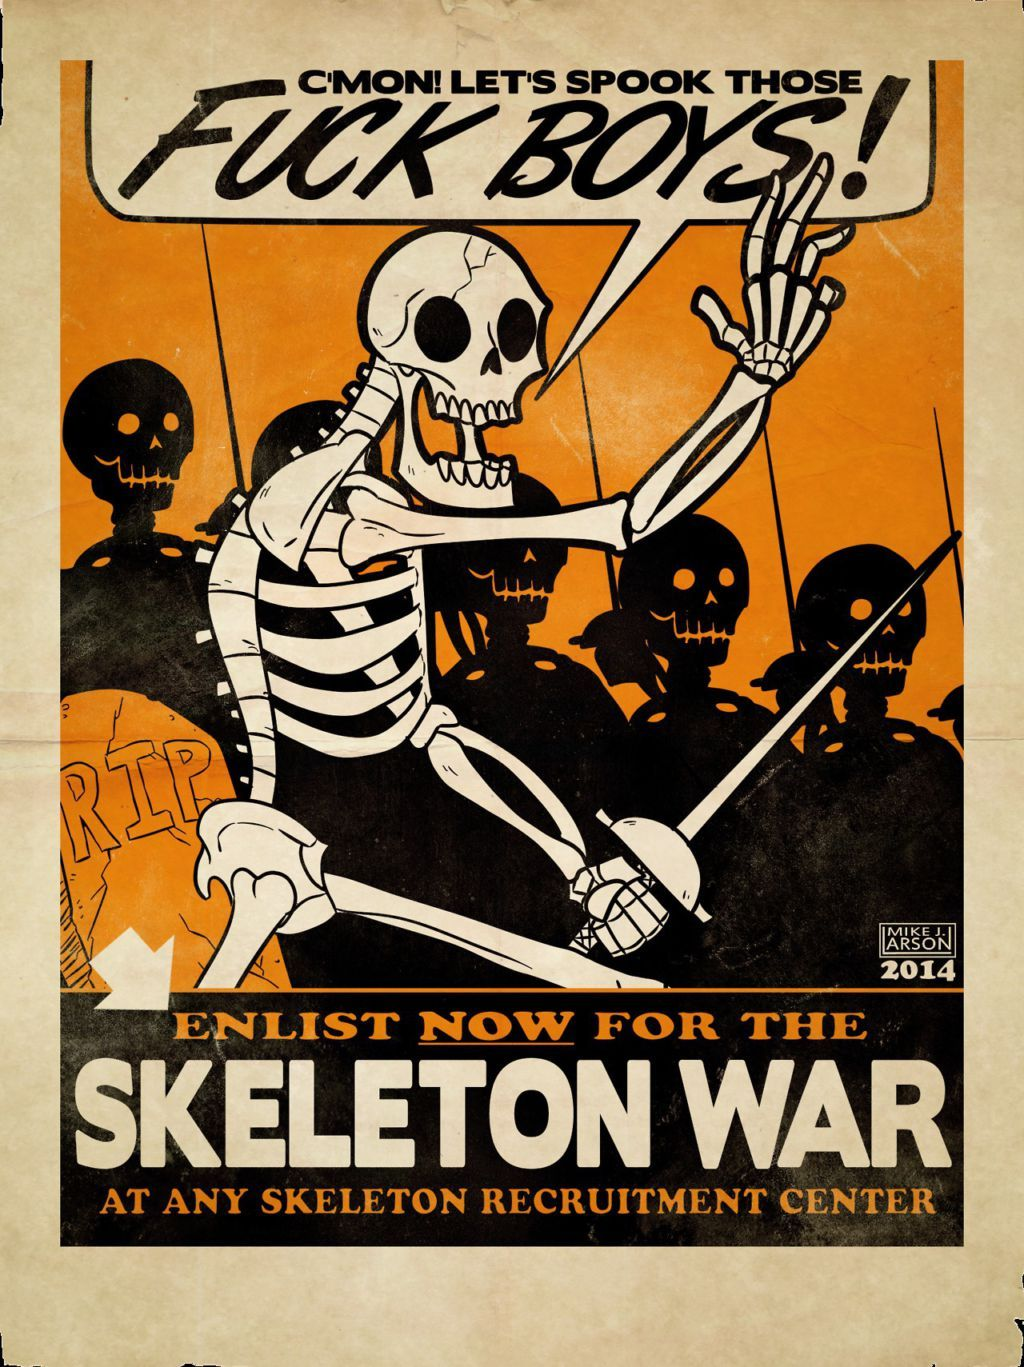 Skeleton War! - meme